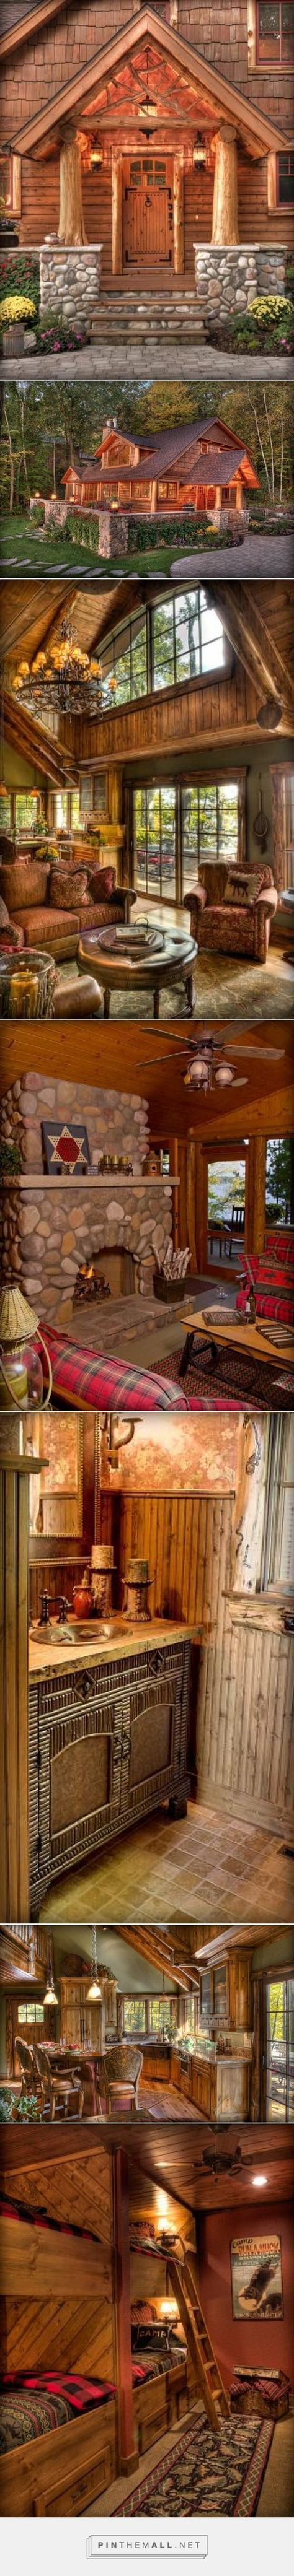 best house images on pinterest home ideas cottage and for the home